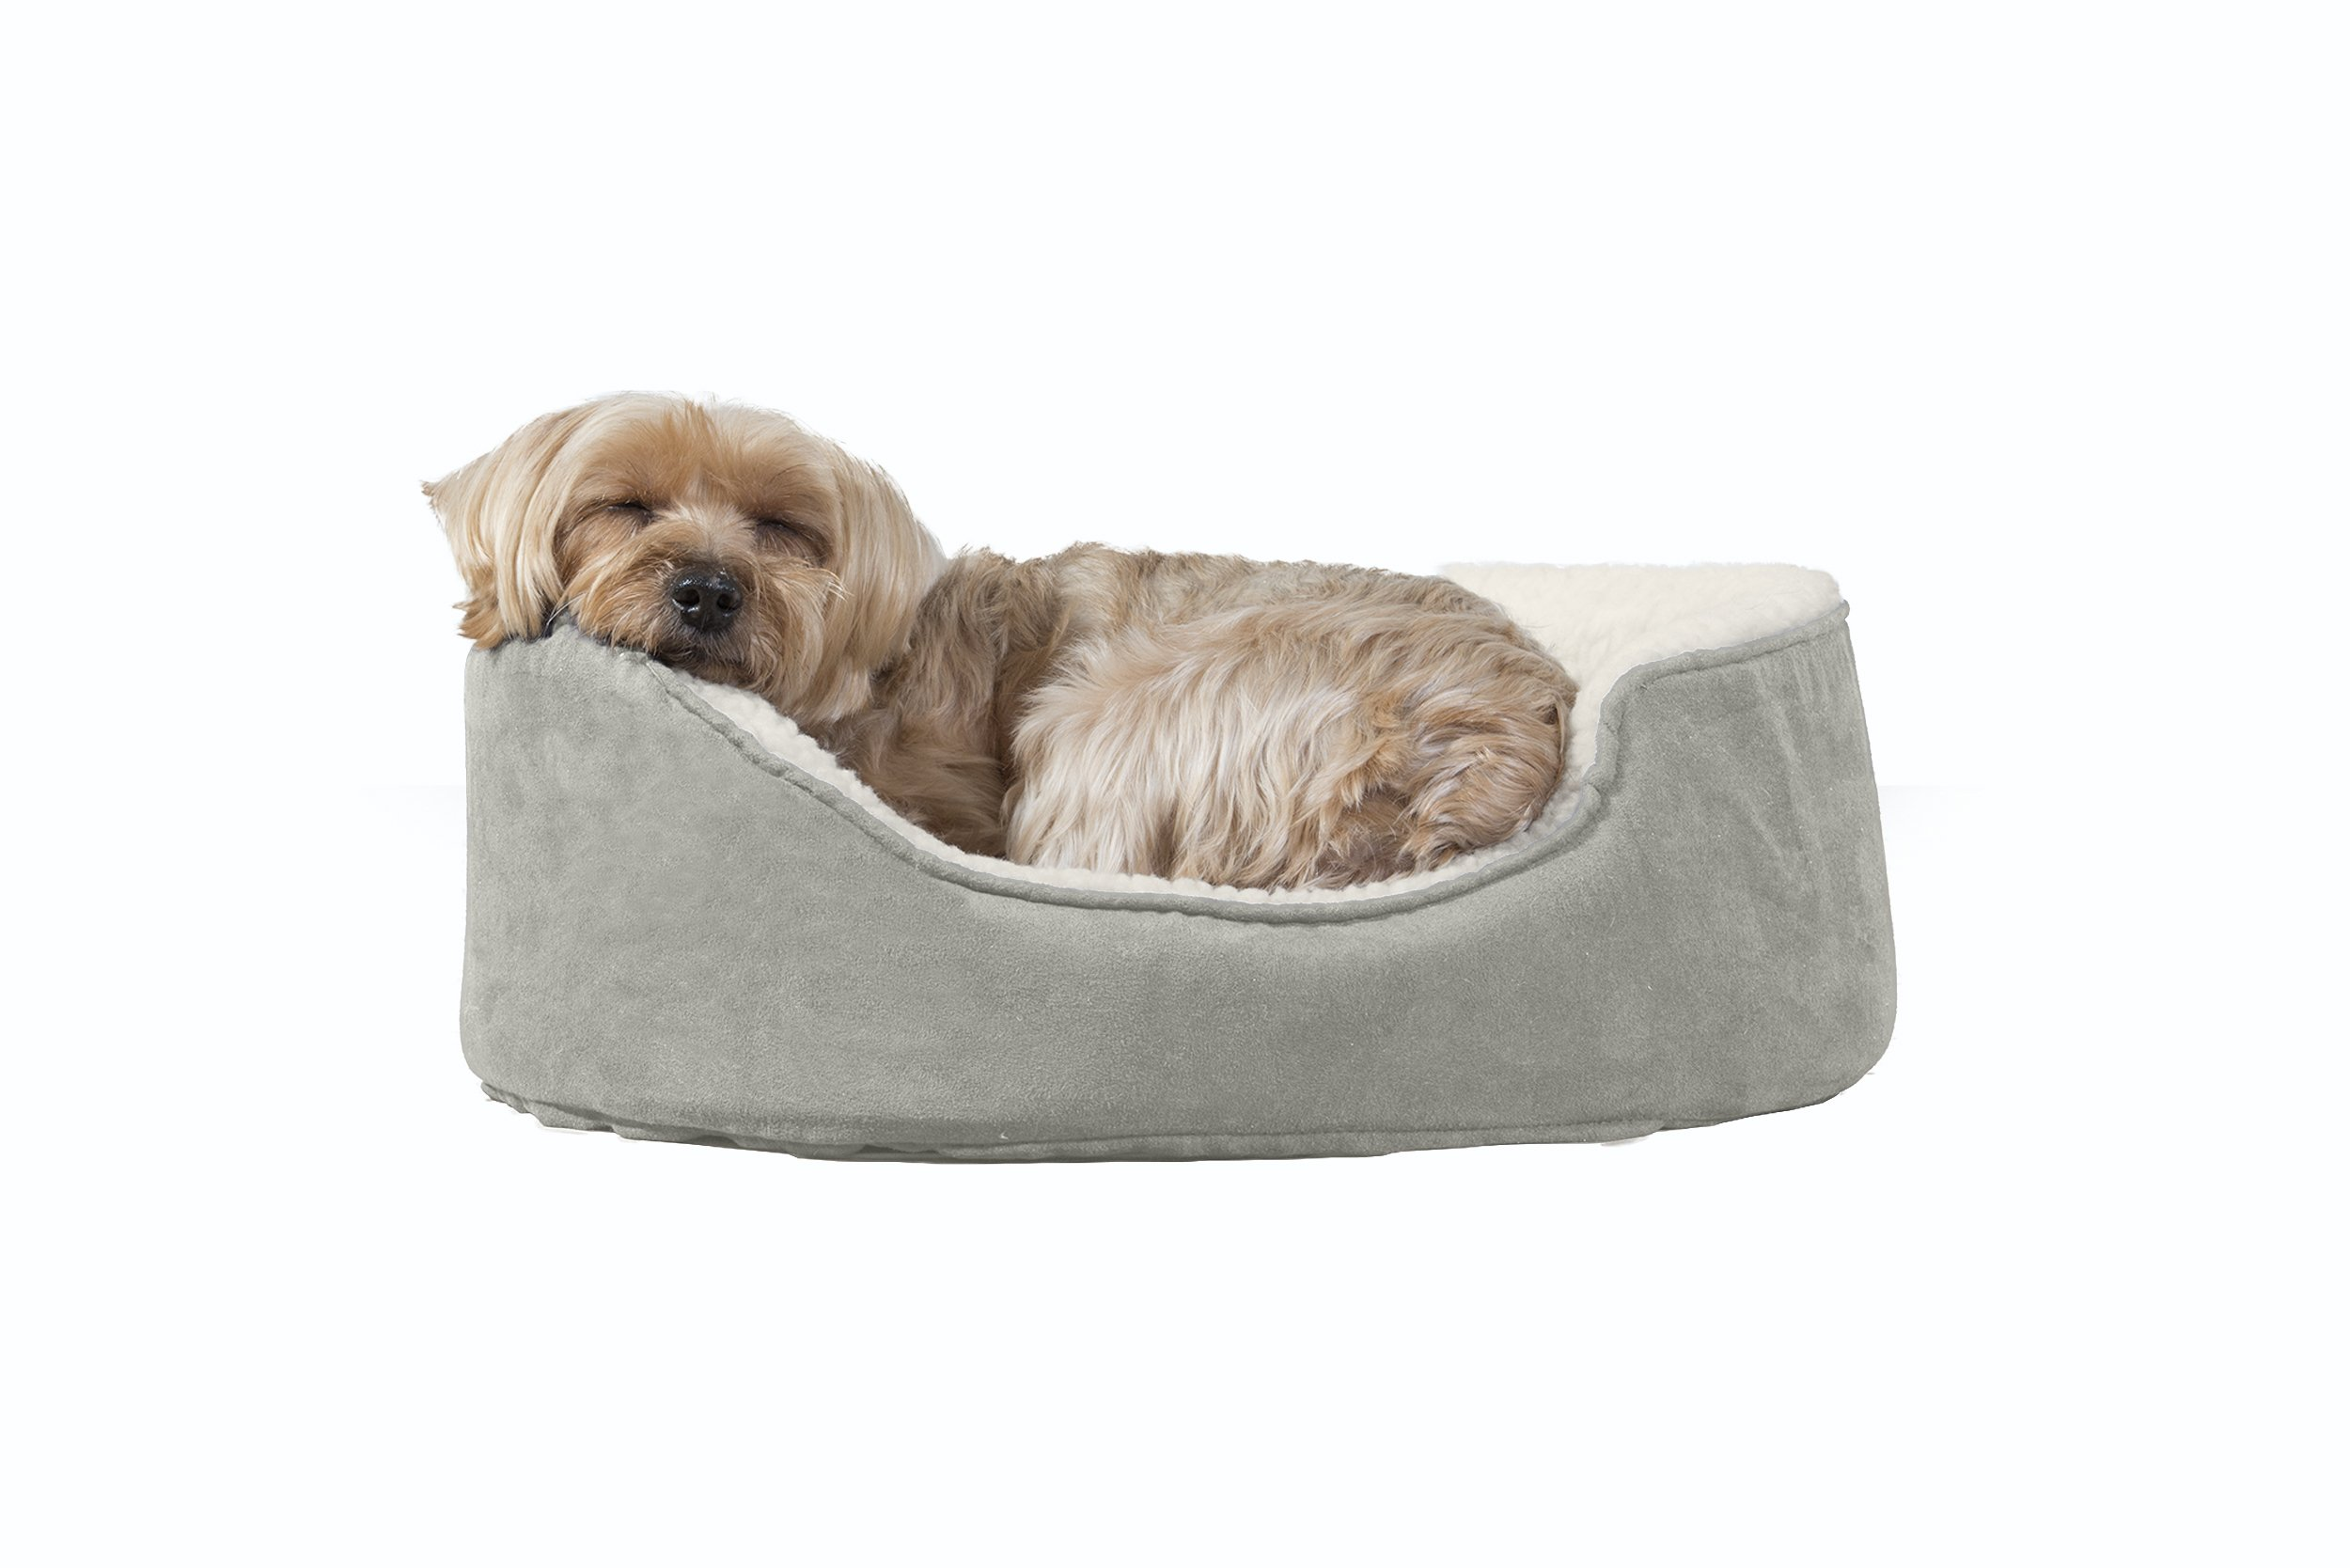 Furhaven Pet Dog Bed | Orthopedic Oval Lounger Pet Bed for Dogs & Cats, Clay, Small